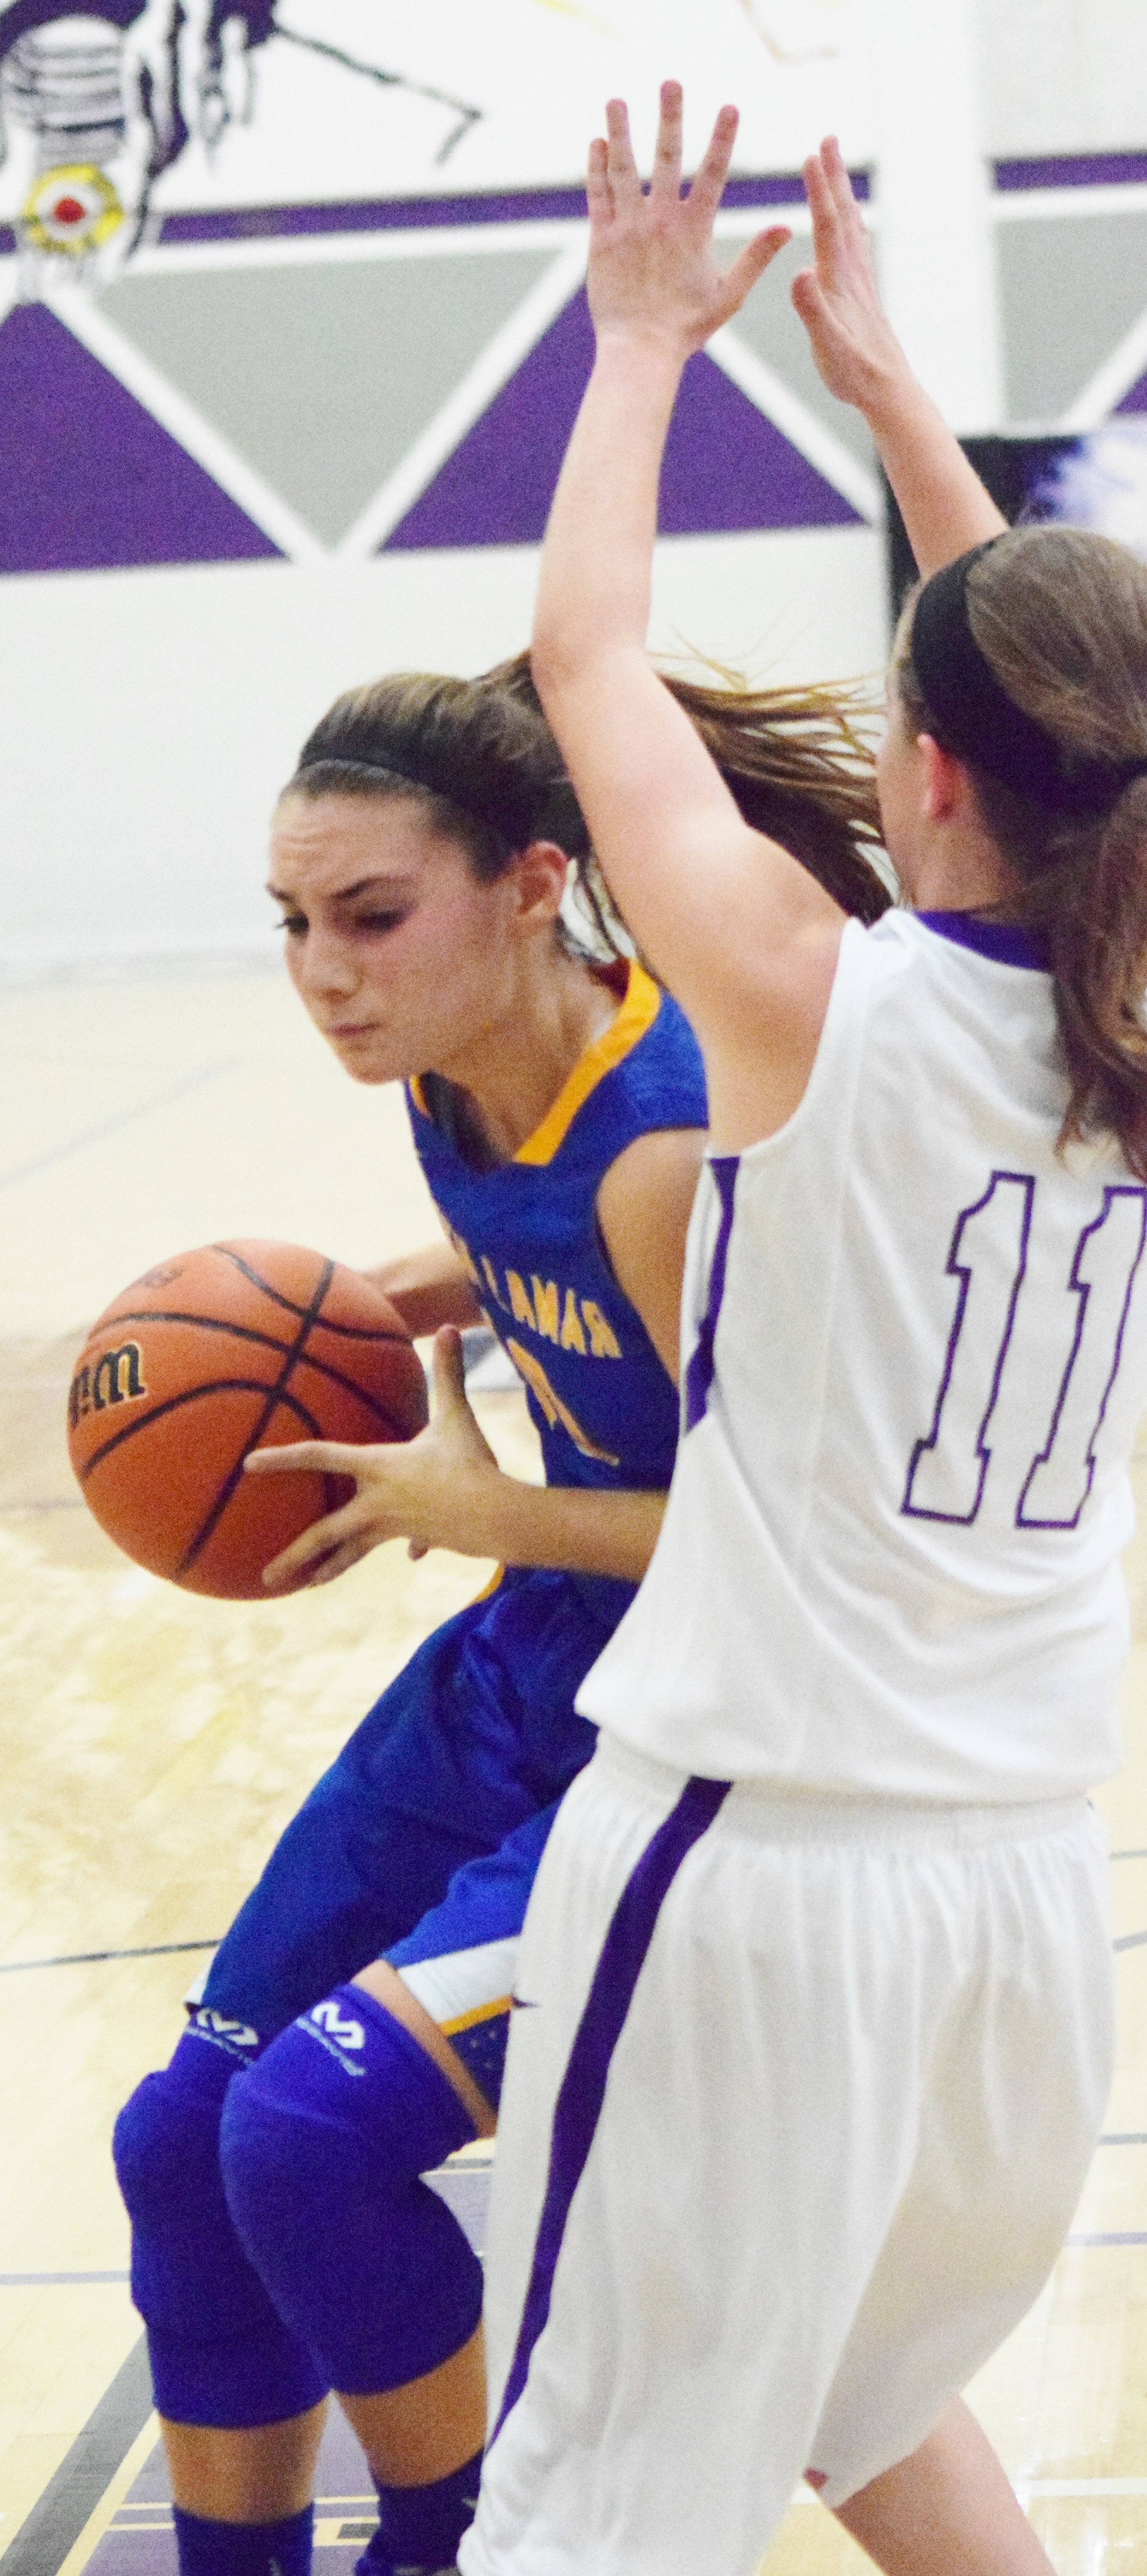 (Photo by Beverly White) Madison Morrison driving against a Bonham defender in the season opener for North Lamar.